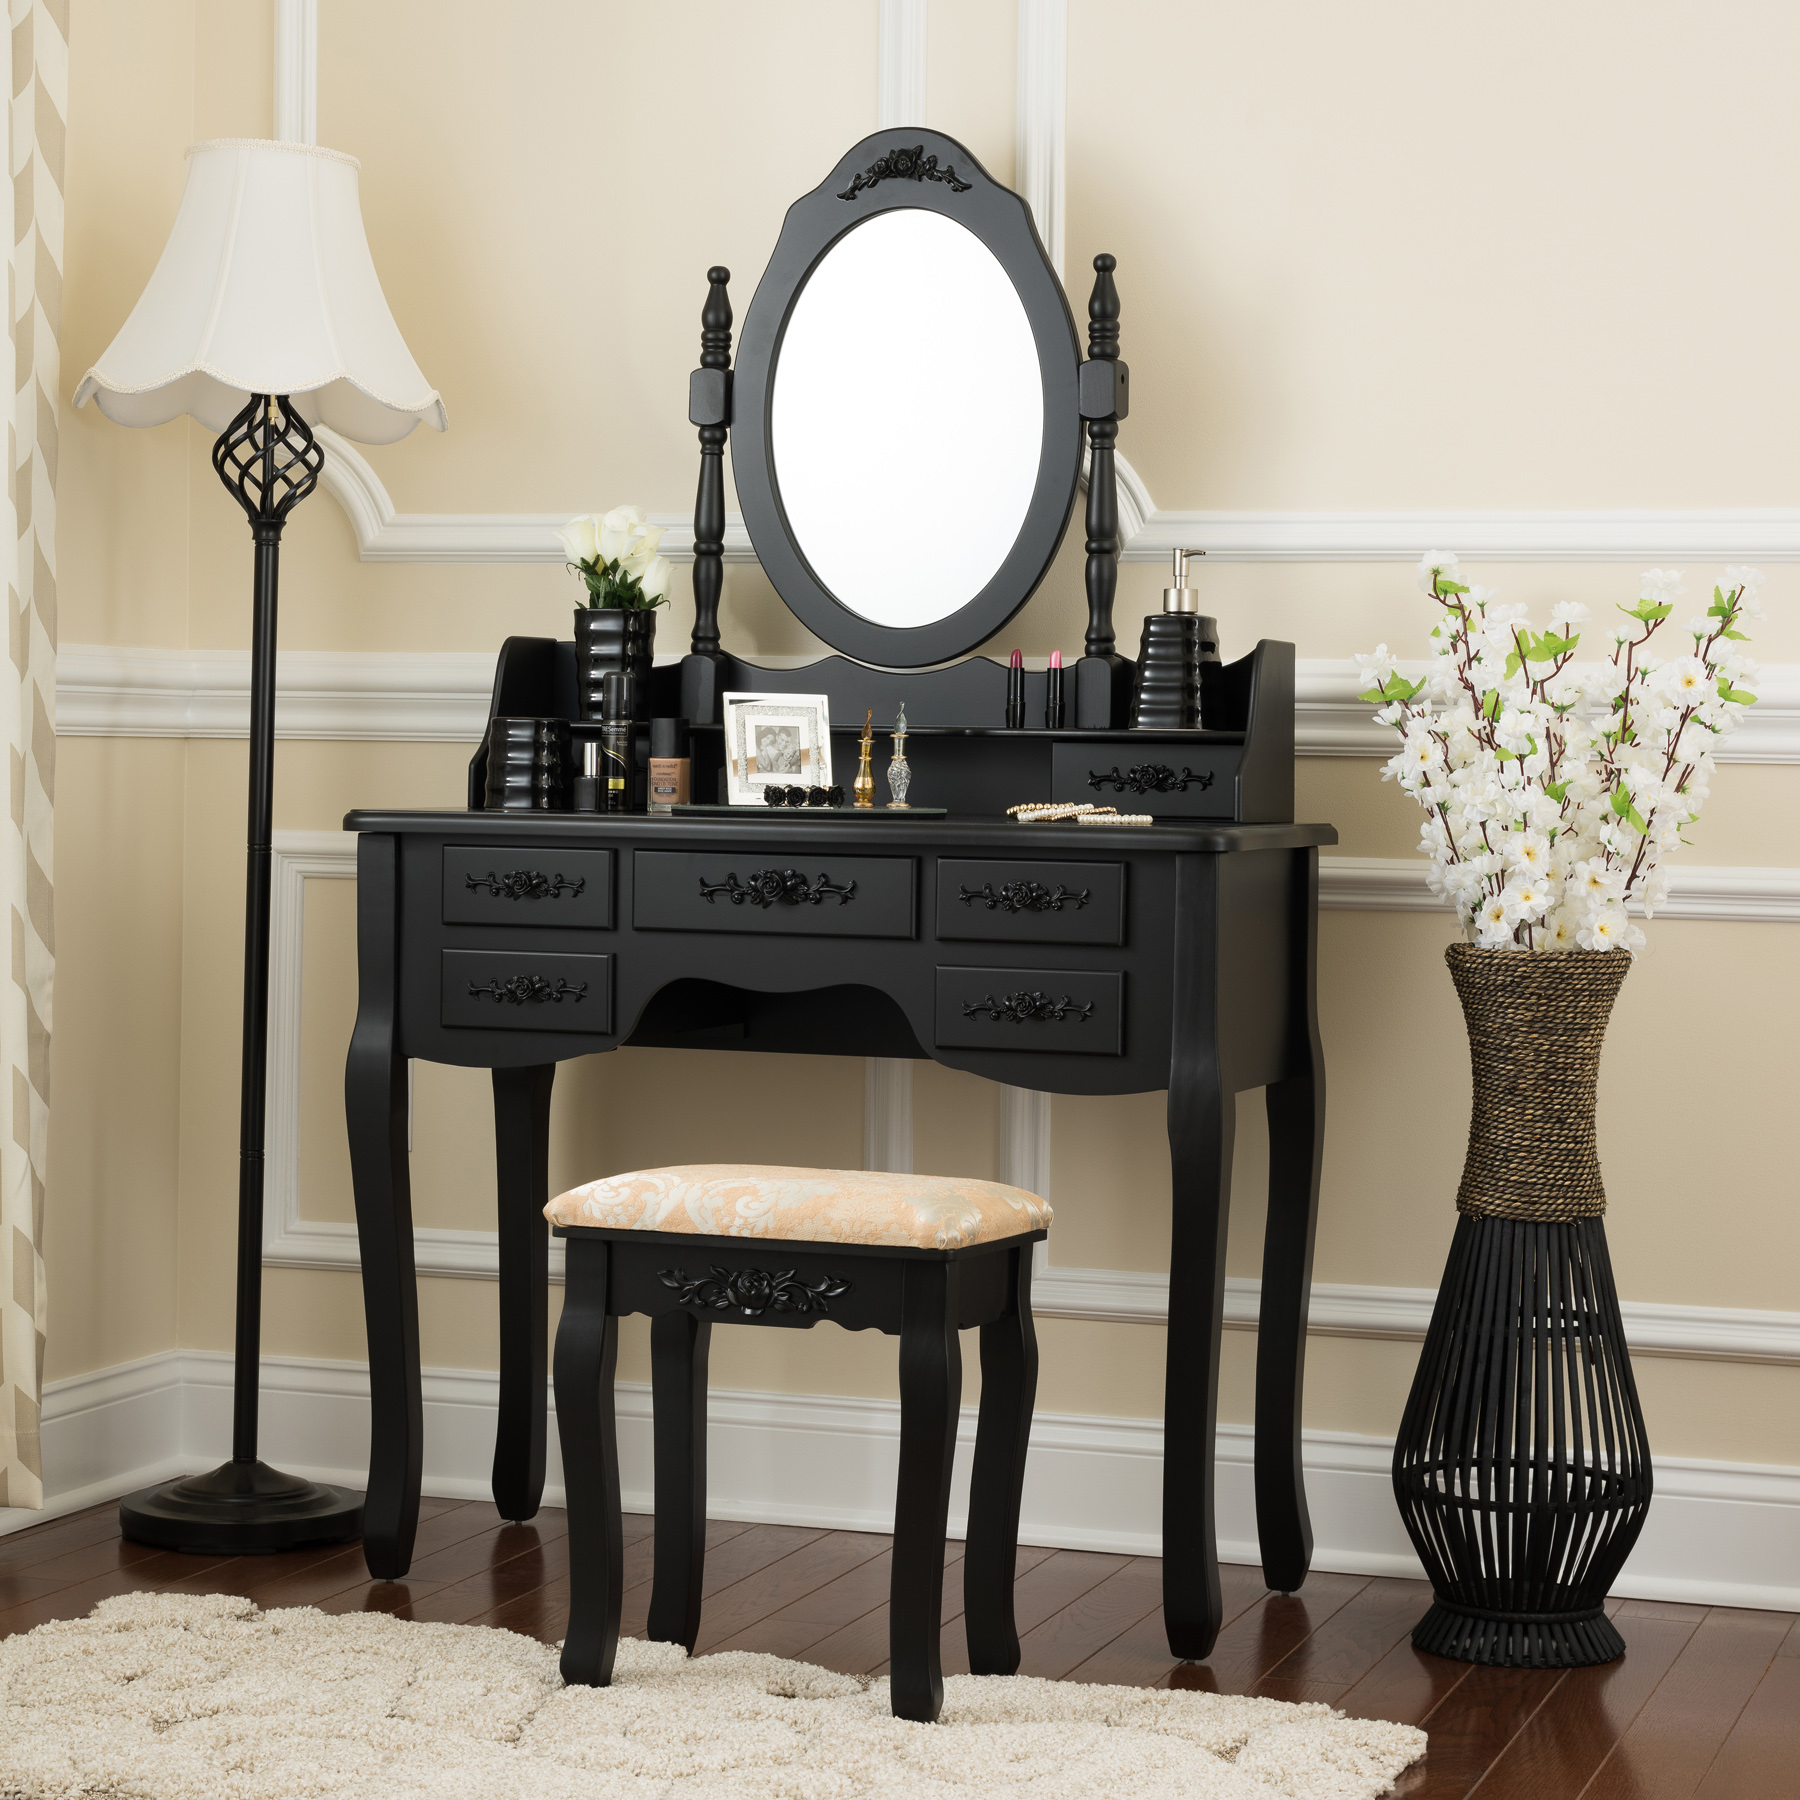 Fineboard Vanity Set with Stool & Mirror Makeup Table with 7 Organization Drawers Single Oval Mirror Make Up... by Fineboard